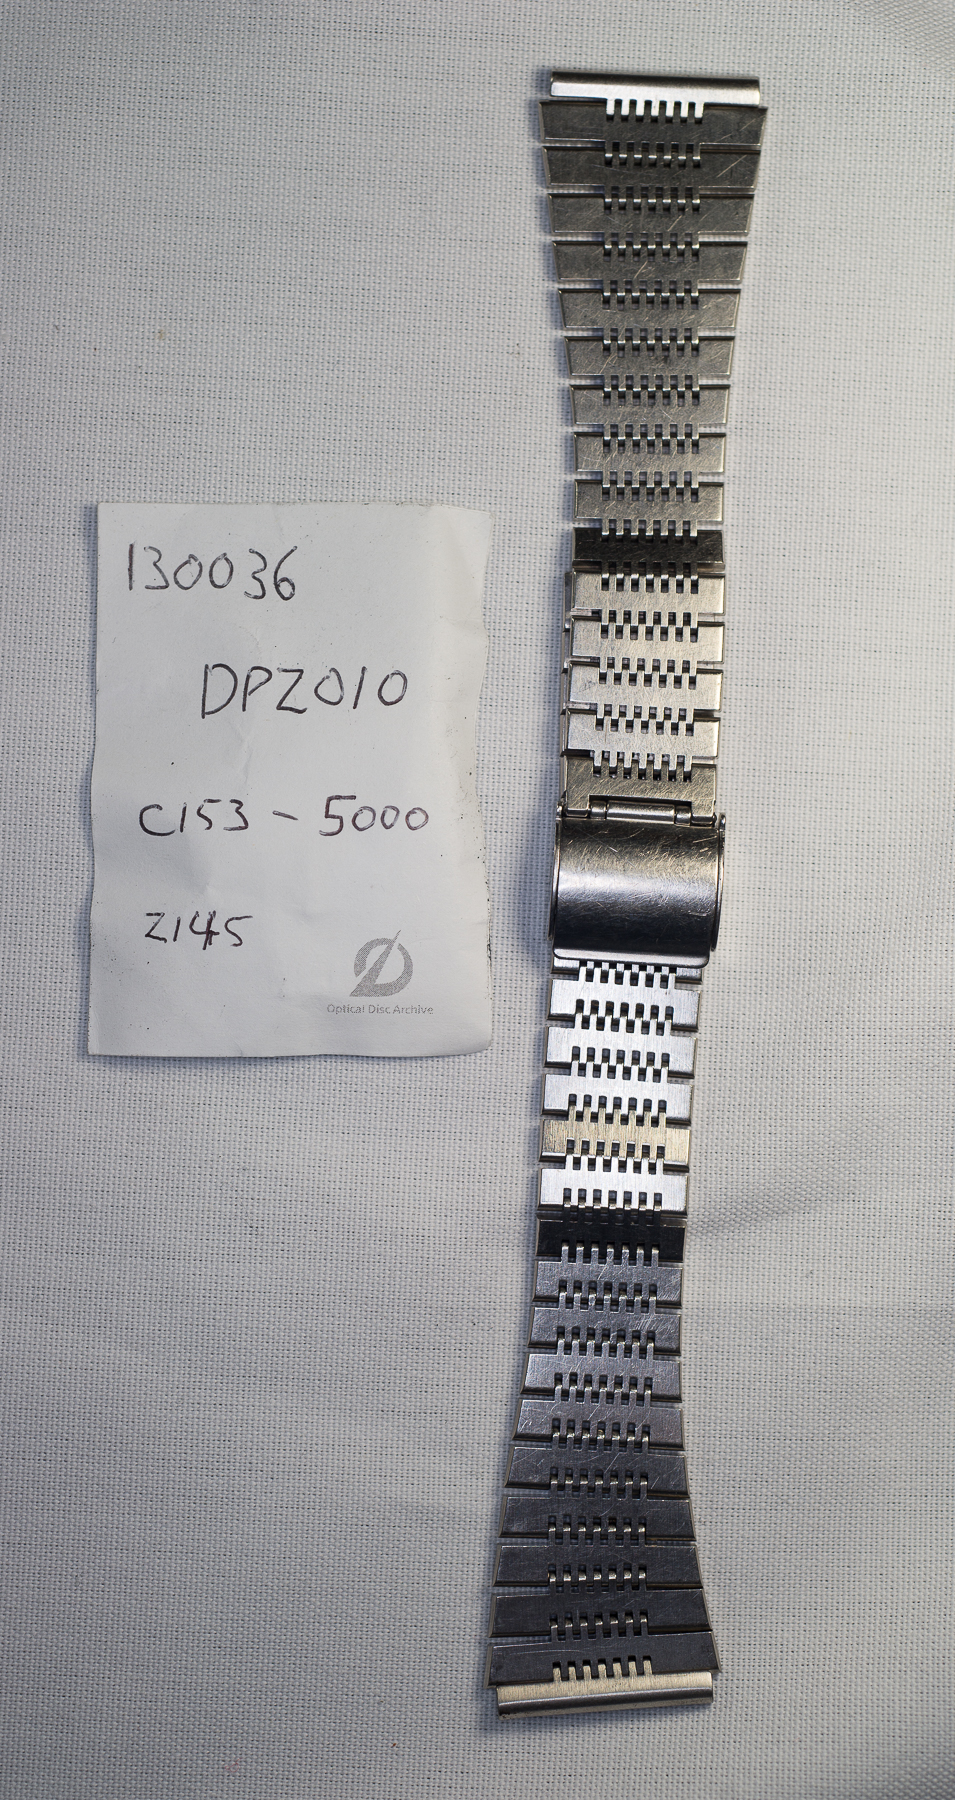 Z145 for C153-5000